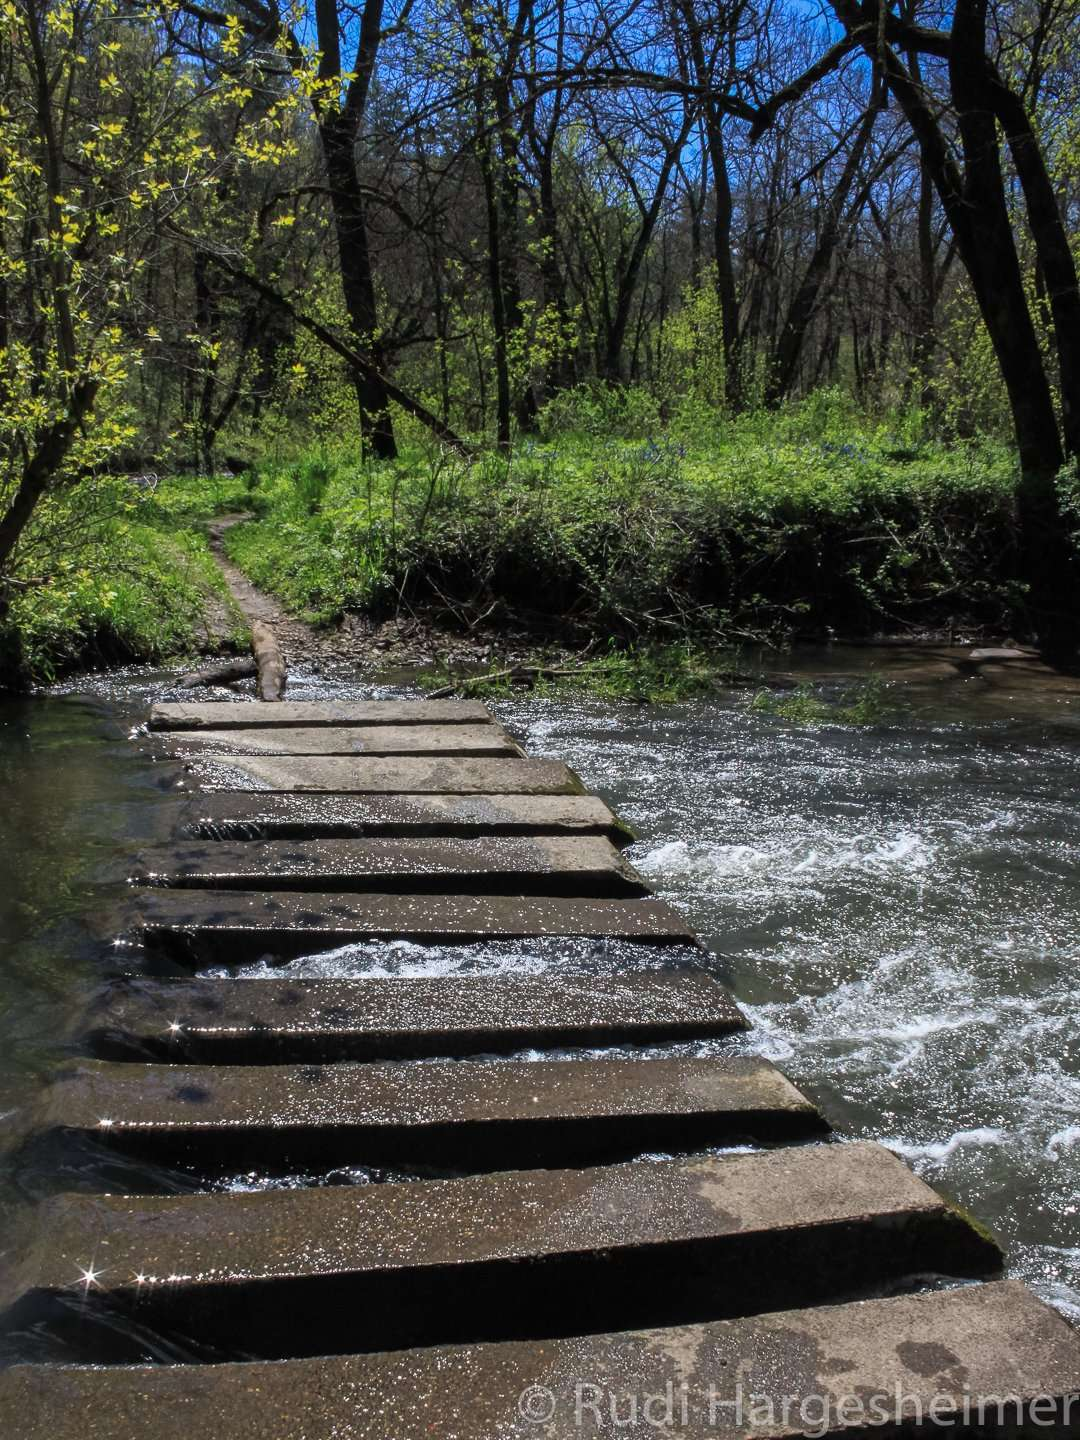 One of the many river crossing on Carley's hiking trails